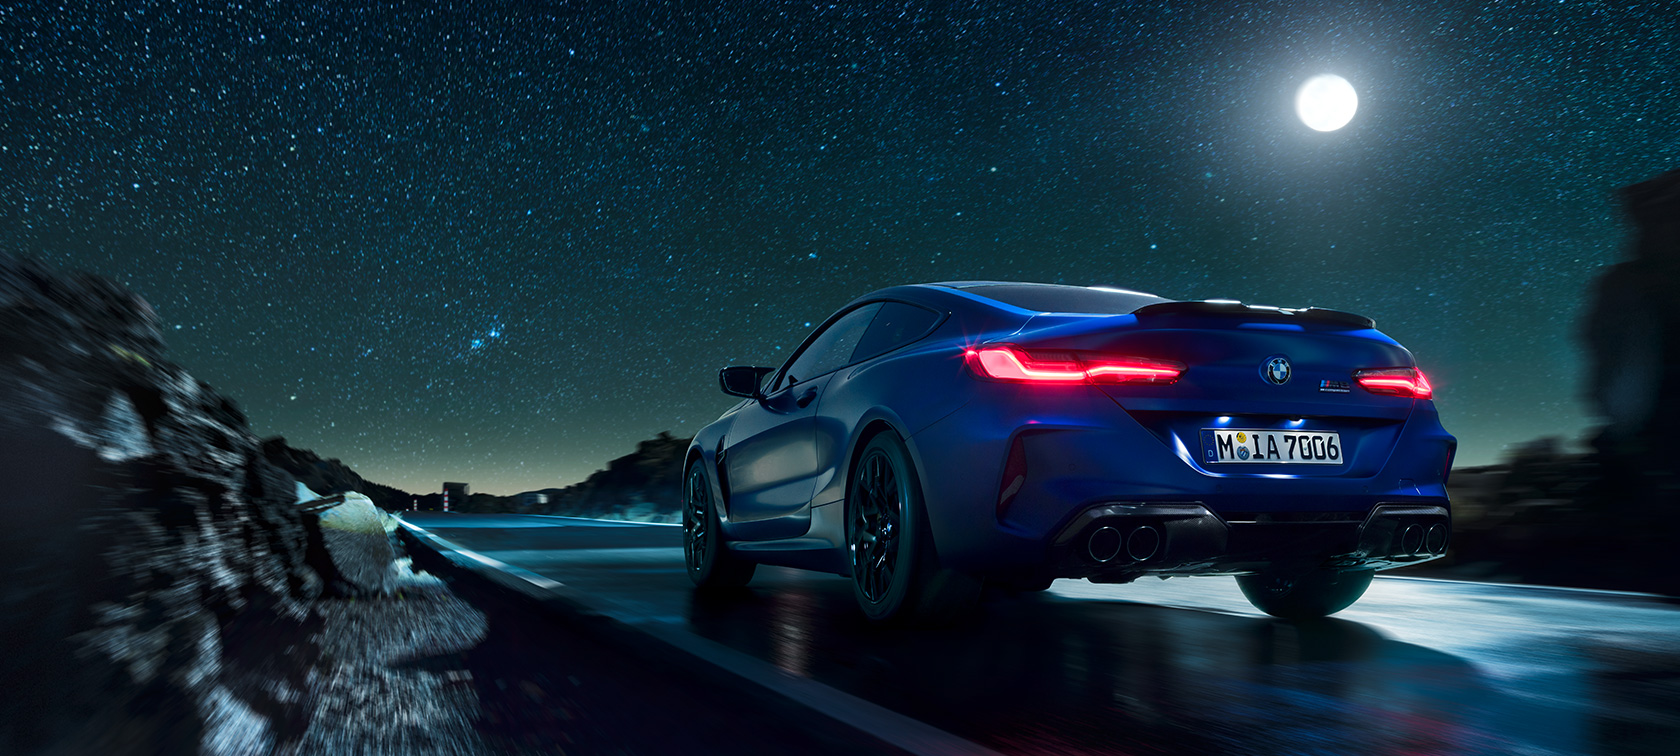 BMW M8 Competition Coupé, rear view, driving at night with full moon.